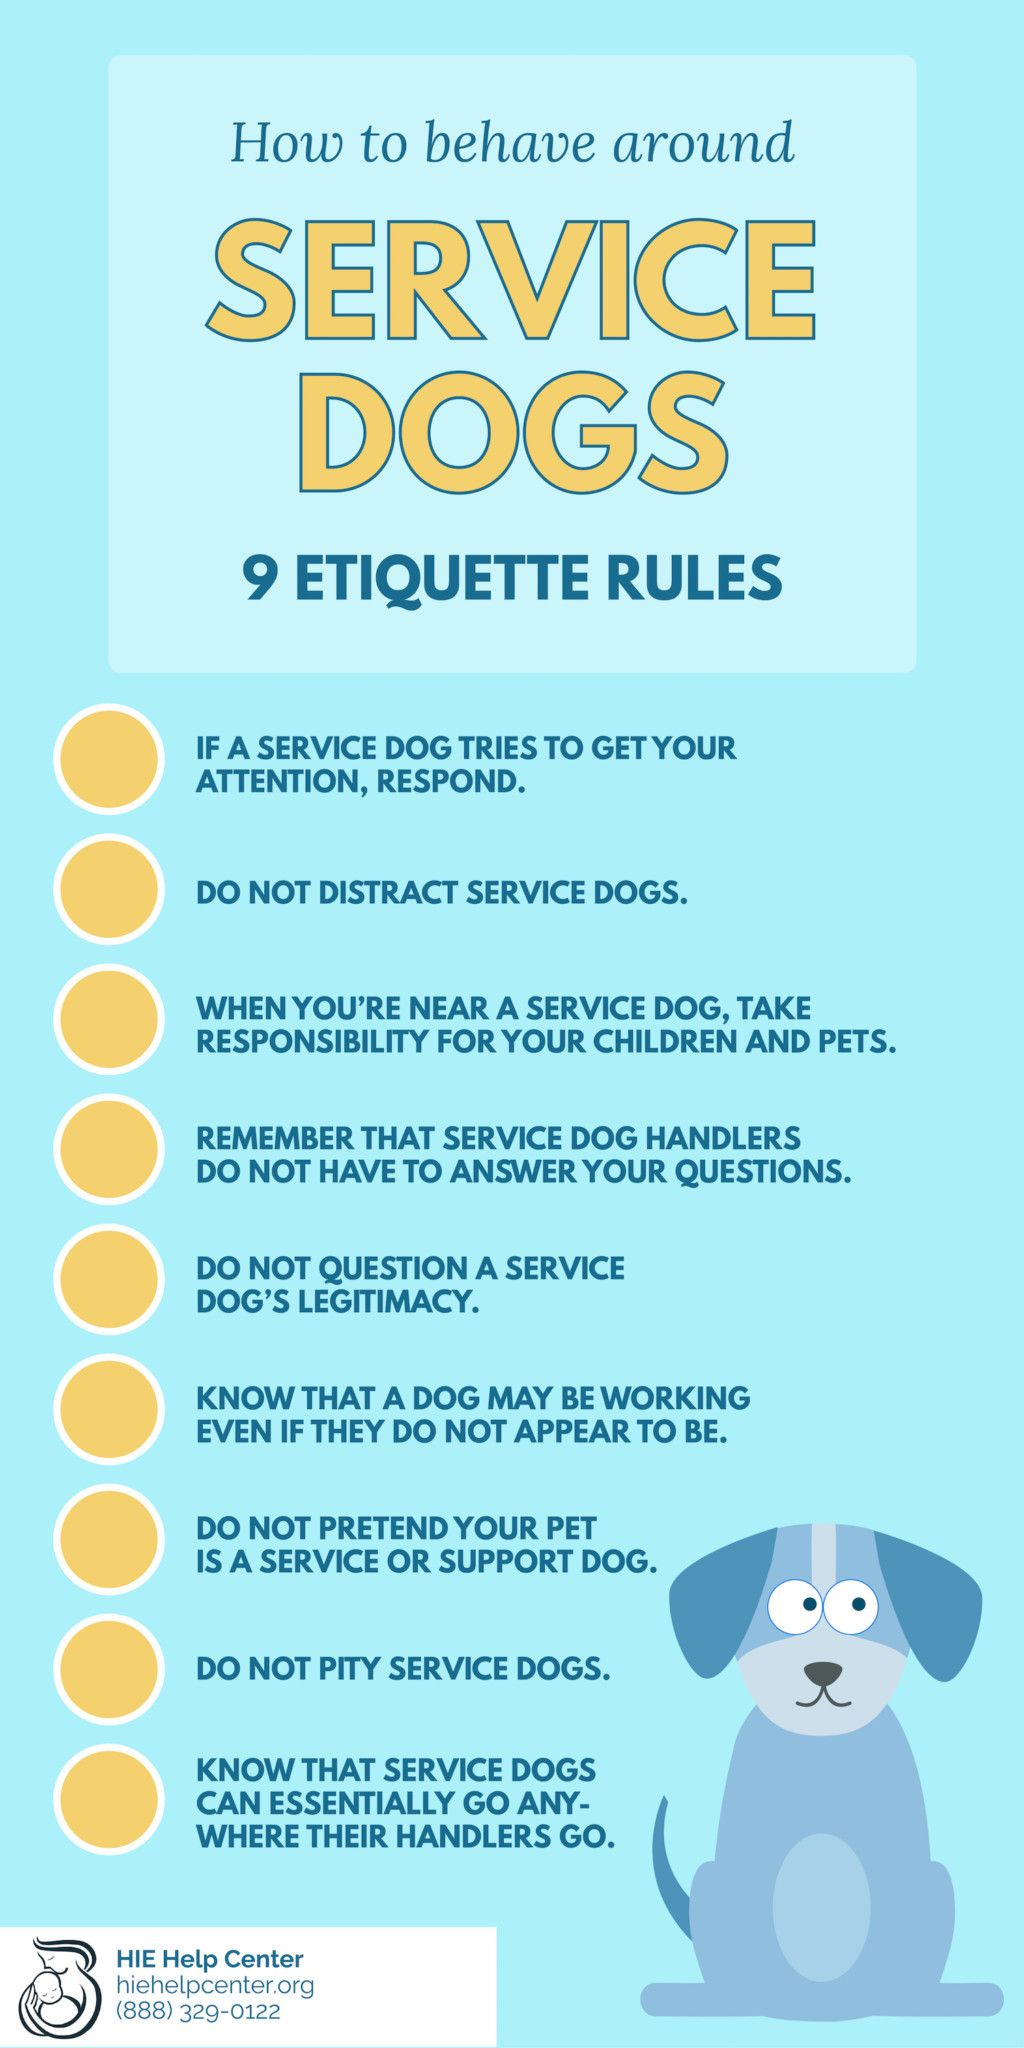 How to behave around service dogs service dogs dogs